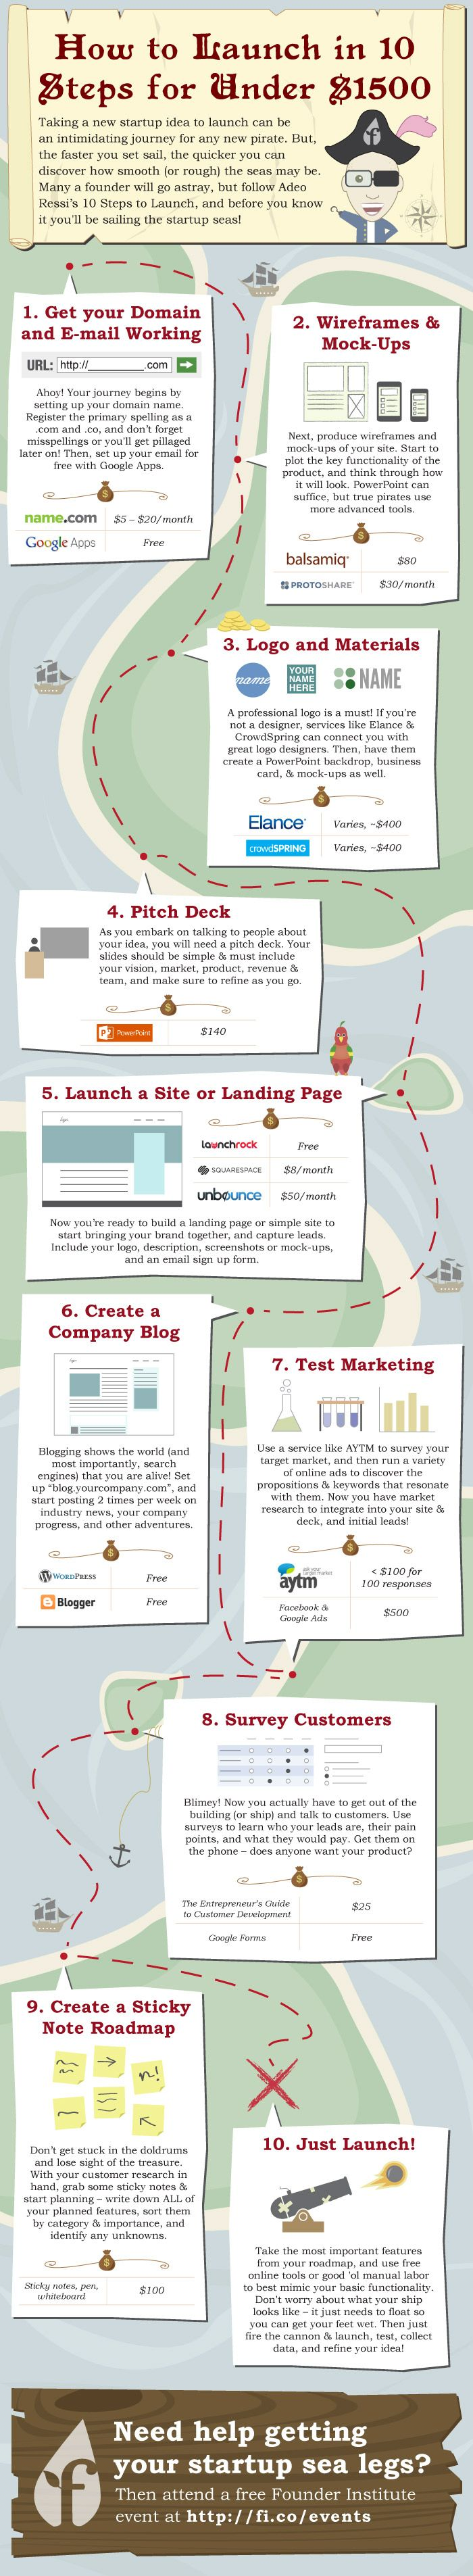 Your Roadmap to Starting Up On the Cheap: 10 Steps to Launch Your Business for Under $1500 (Infographic) branding | marketing | startup | entrepreneur infographic | business infographic | branding infographic